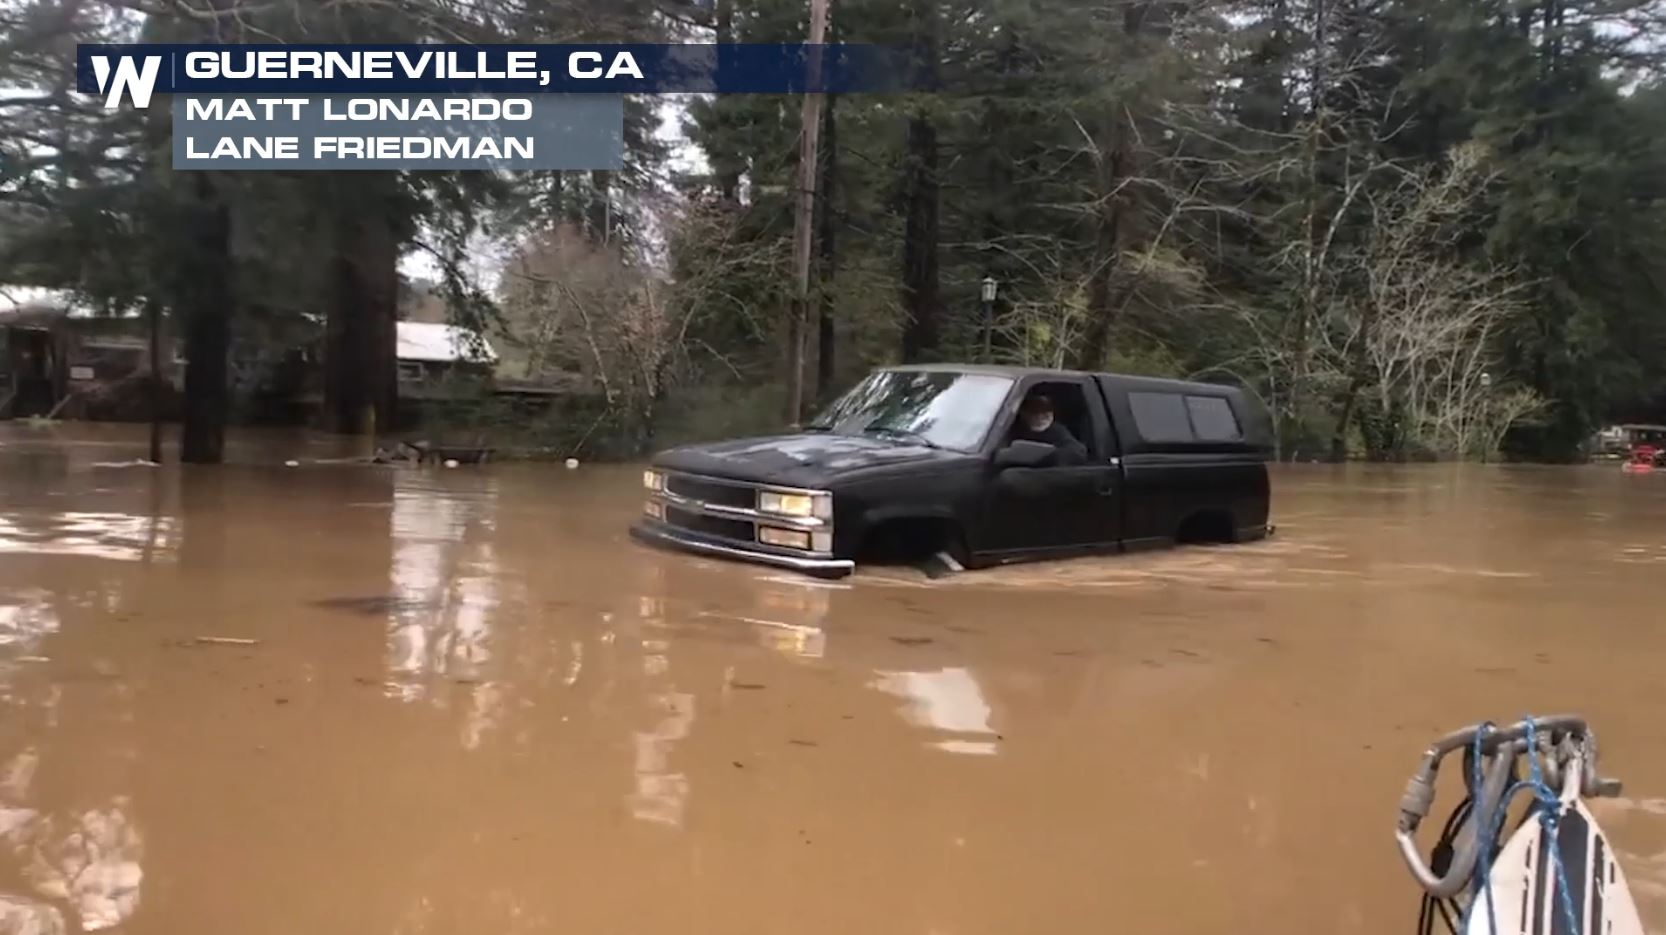 Guerneville on Road to Recovery After Devastating Floods